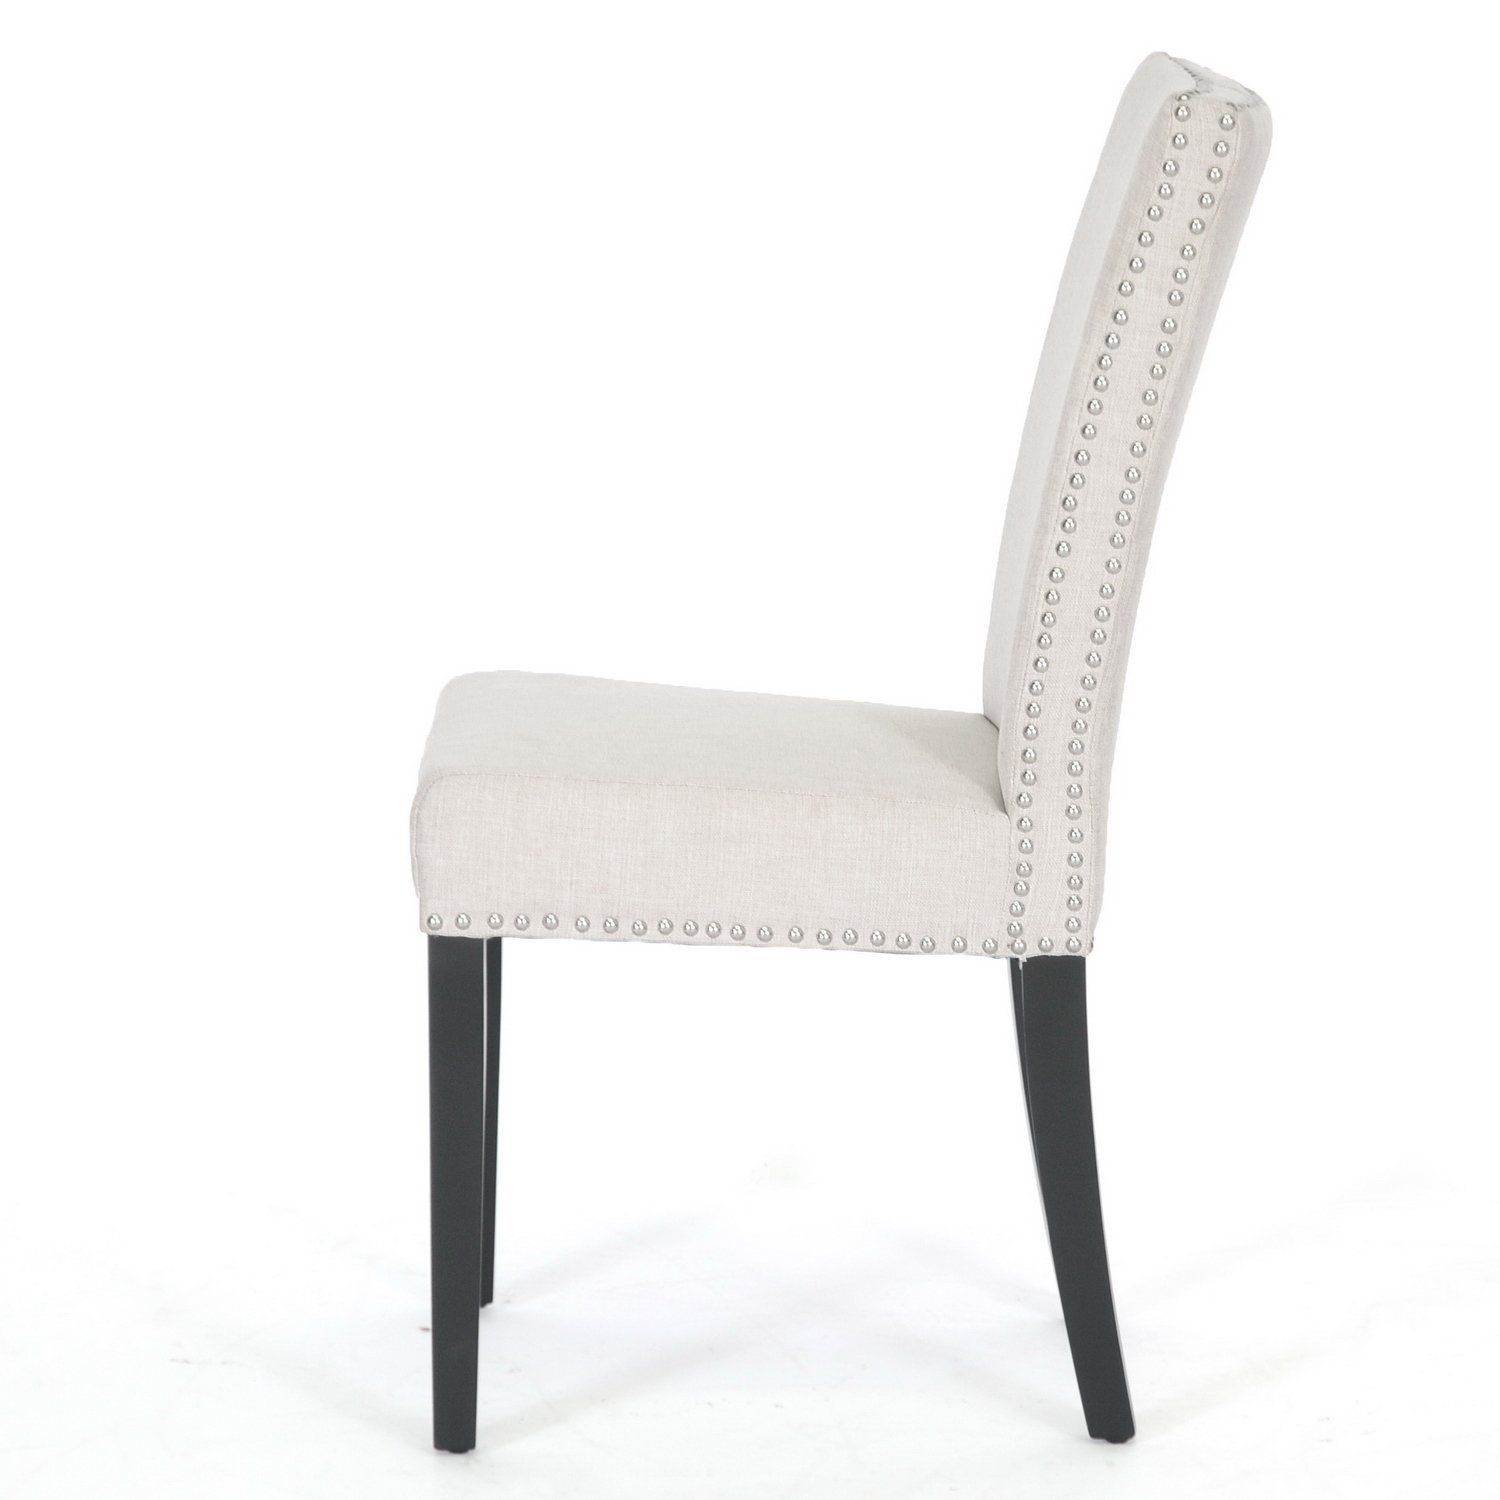 99 white faux leather chairs sale americas best furniture check